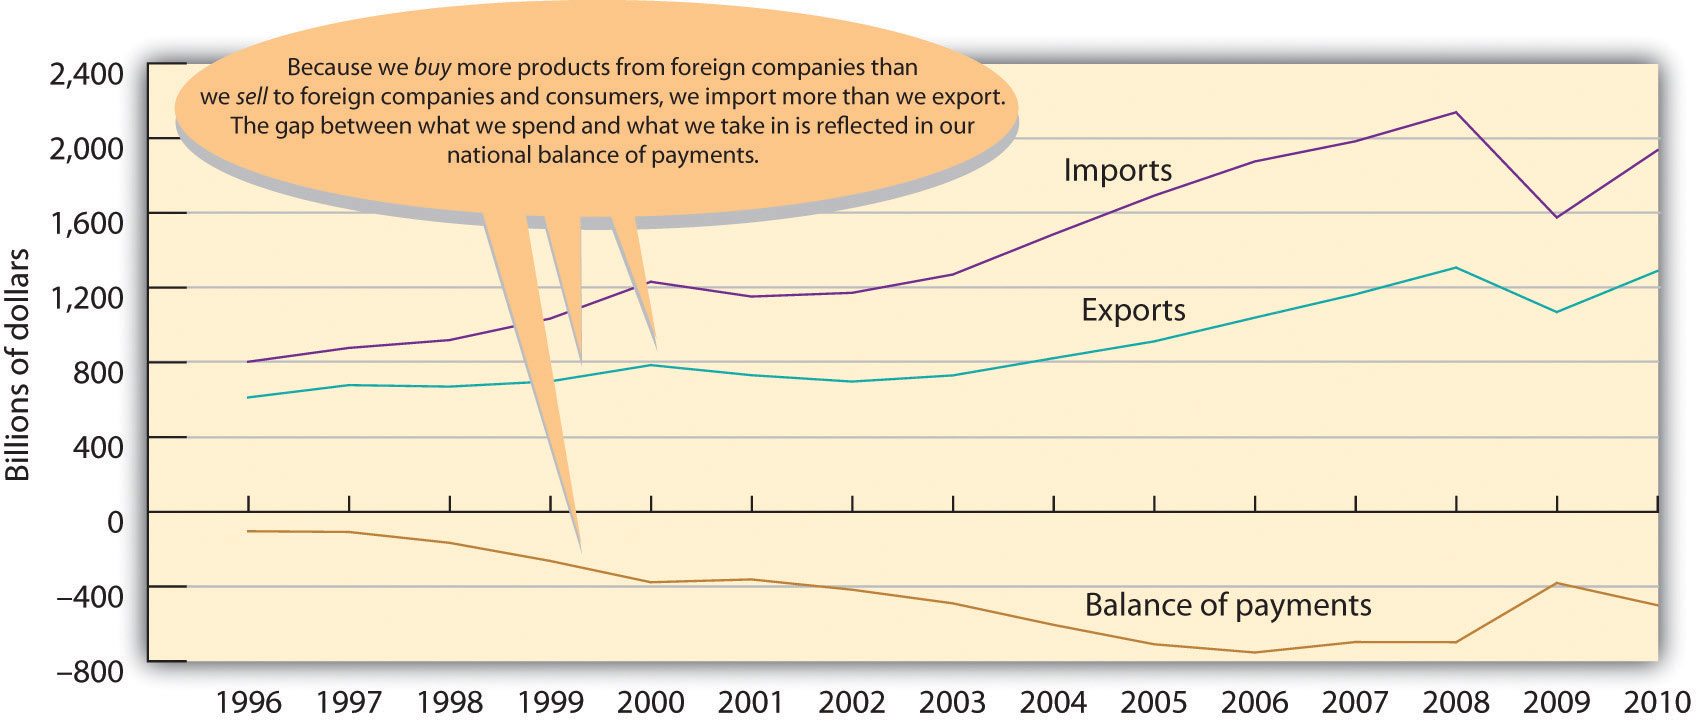 If china surpass us standard of living will malaysia afford to import their goods ??